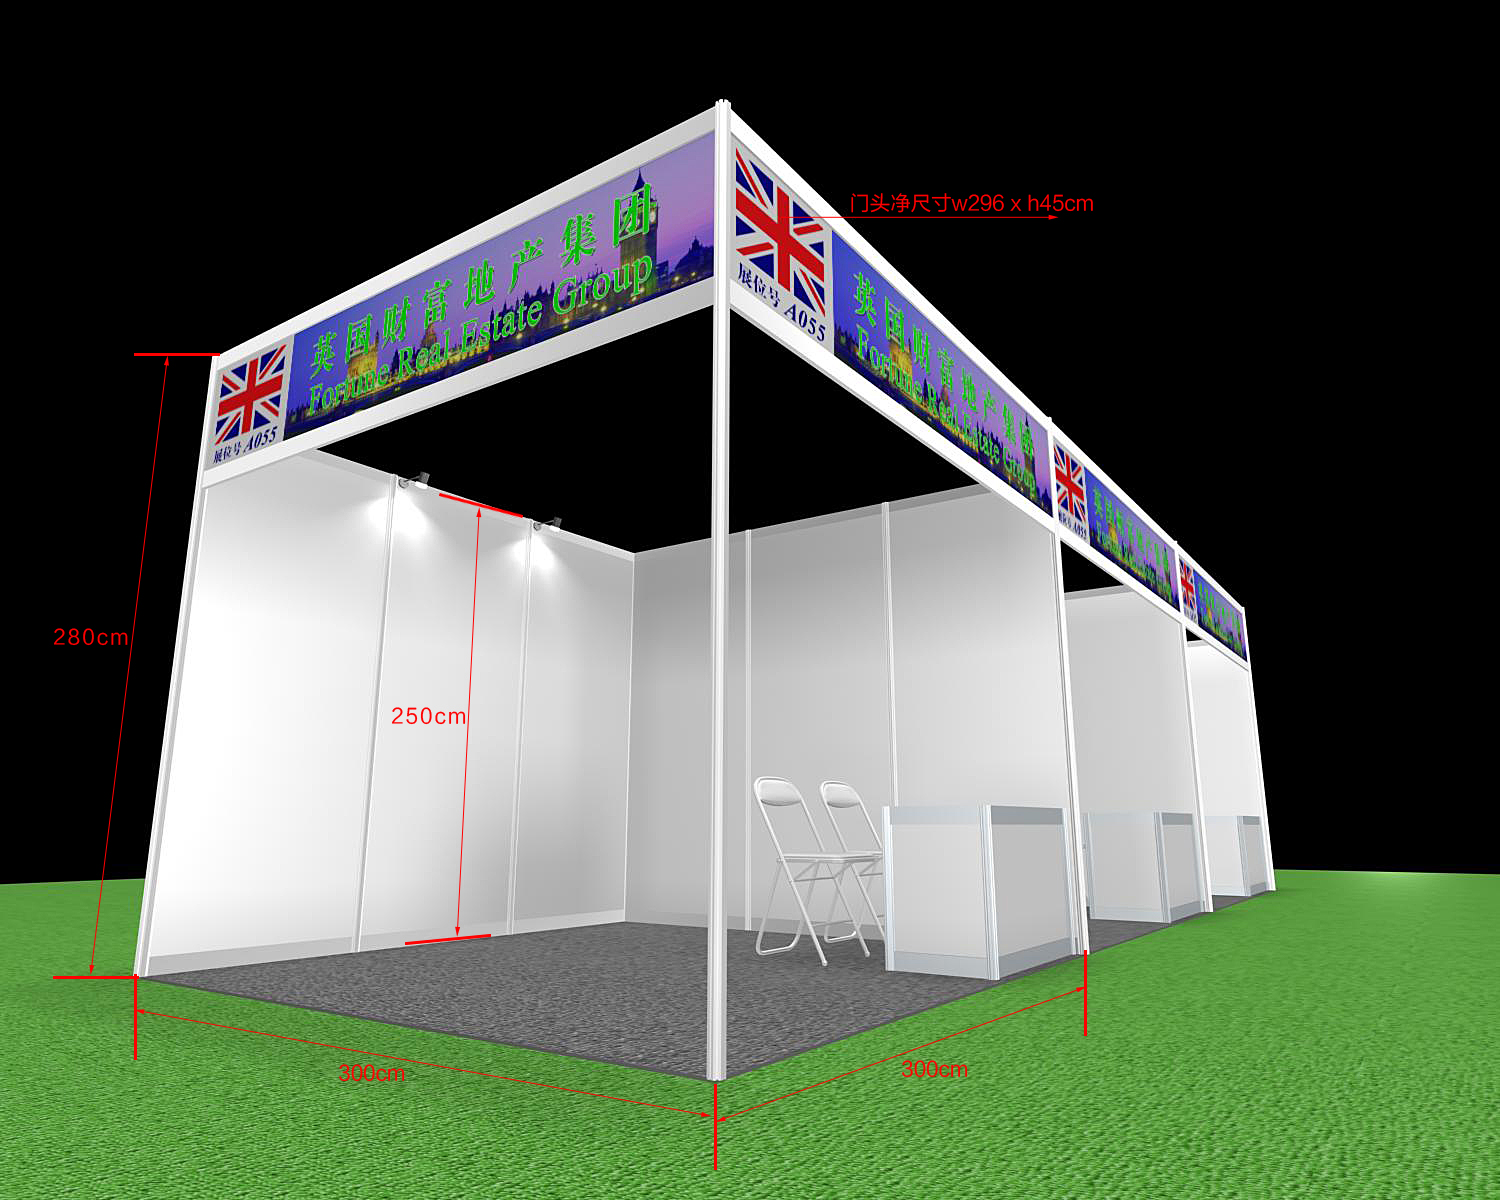 Exhibition Booth Invitation Letter : Beijing international property investment expo